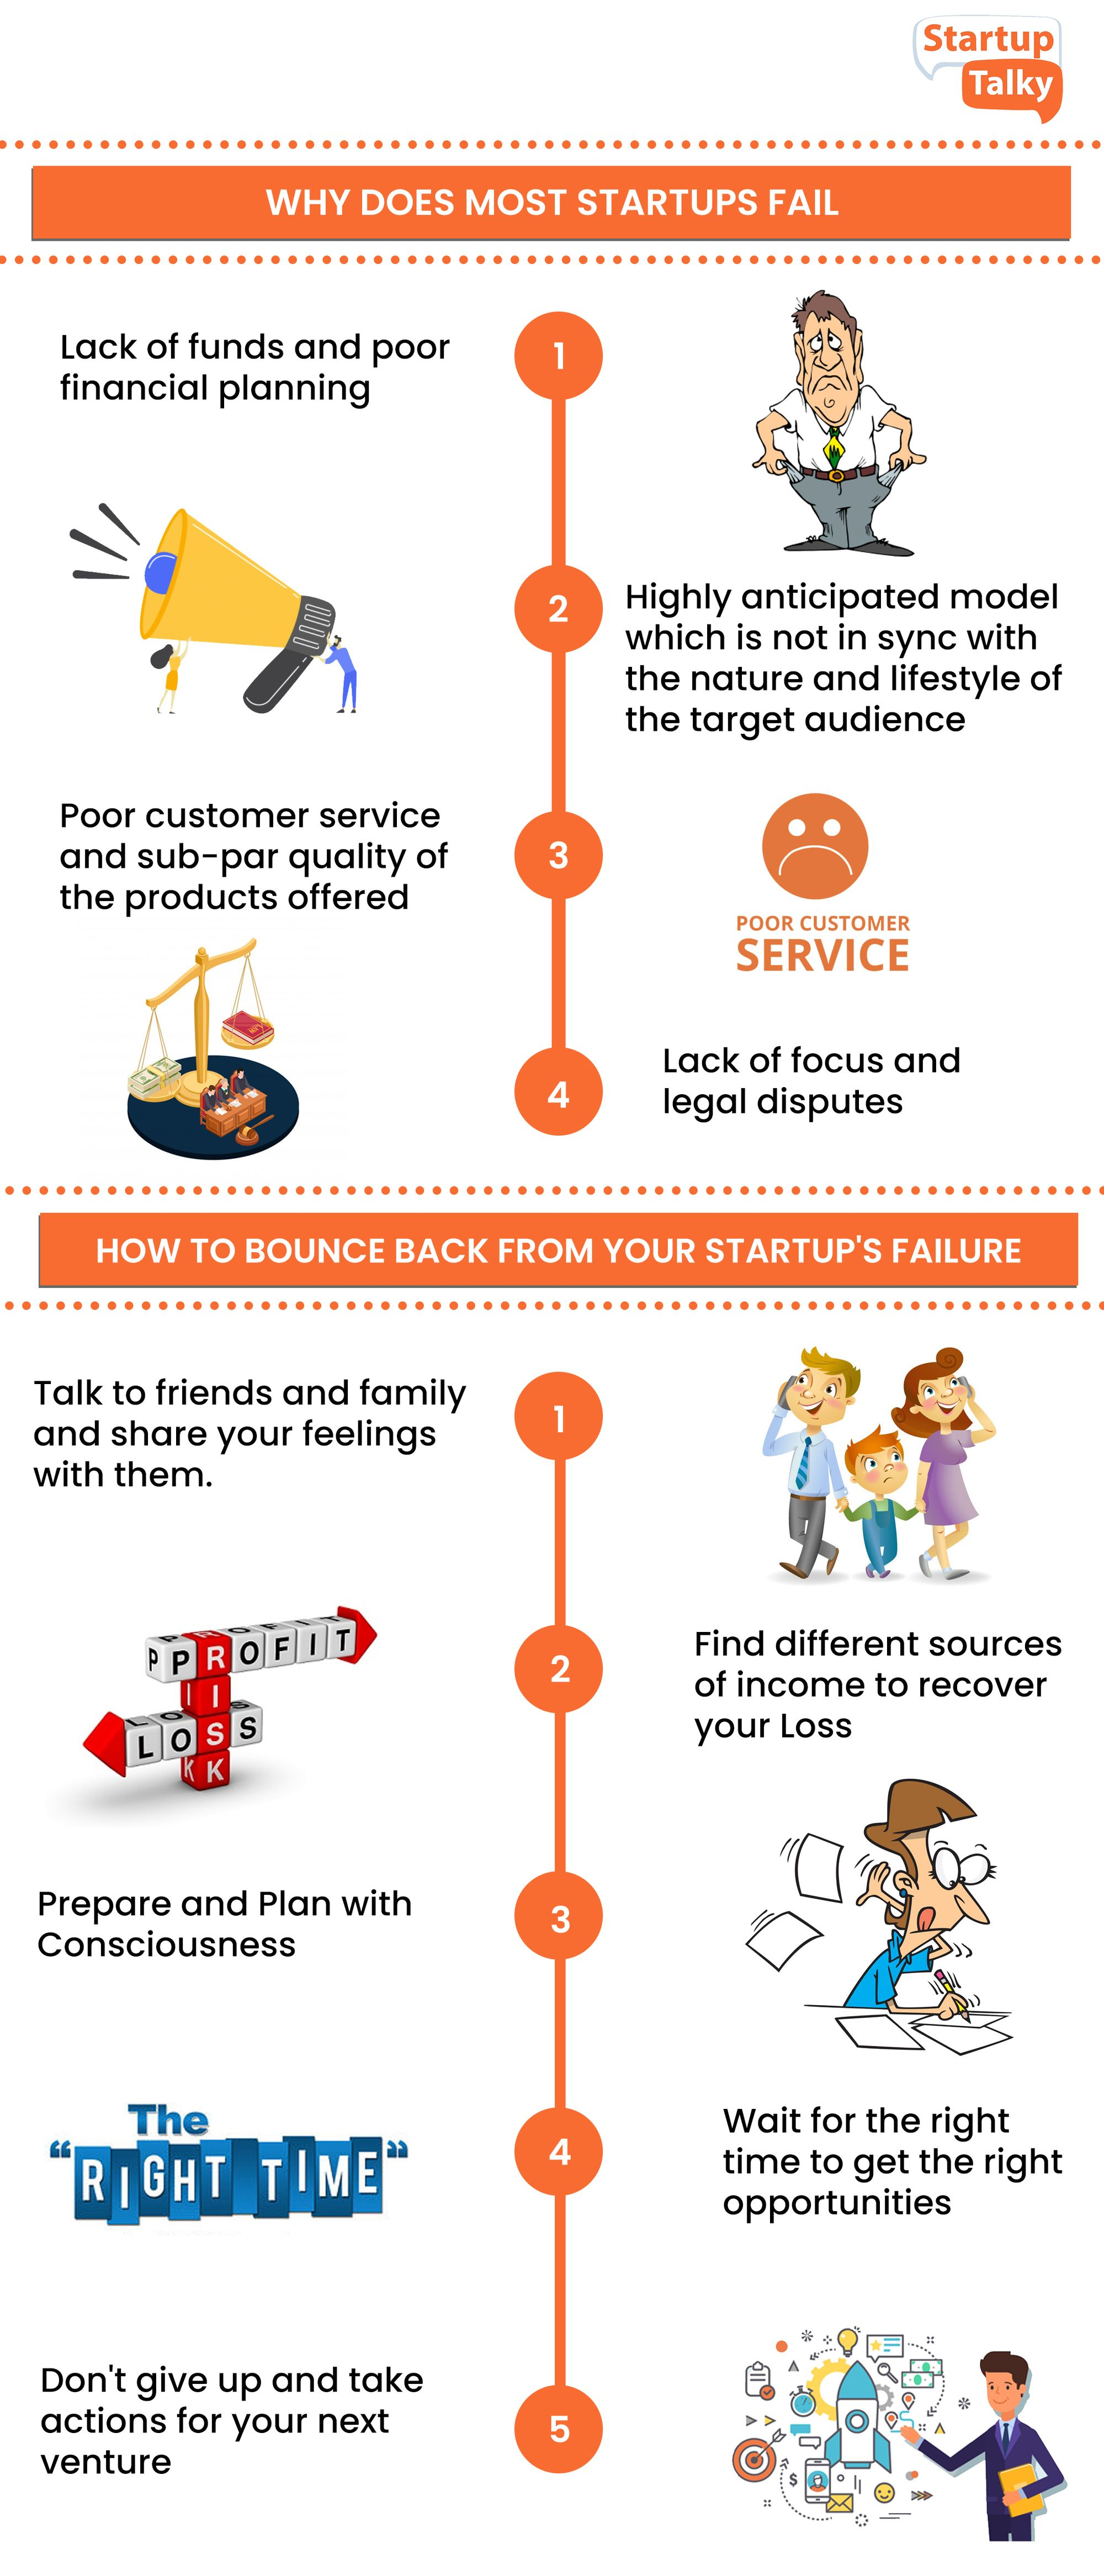 Summery on why Startups fail and how to bounce back from Startup failure